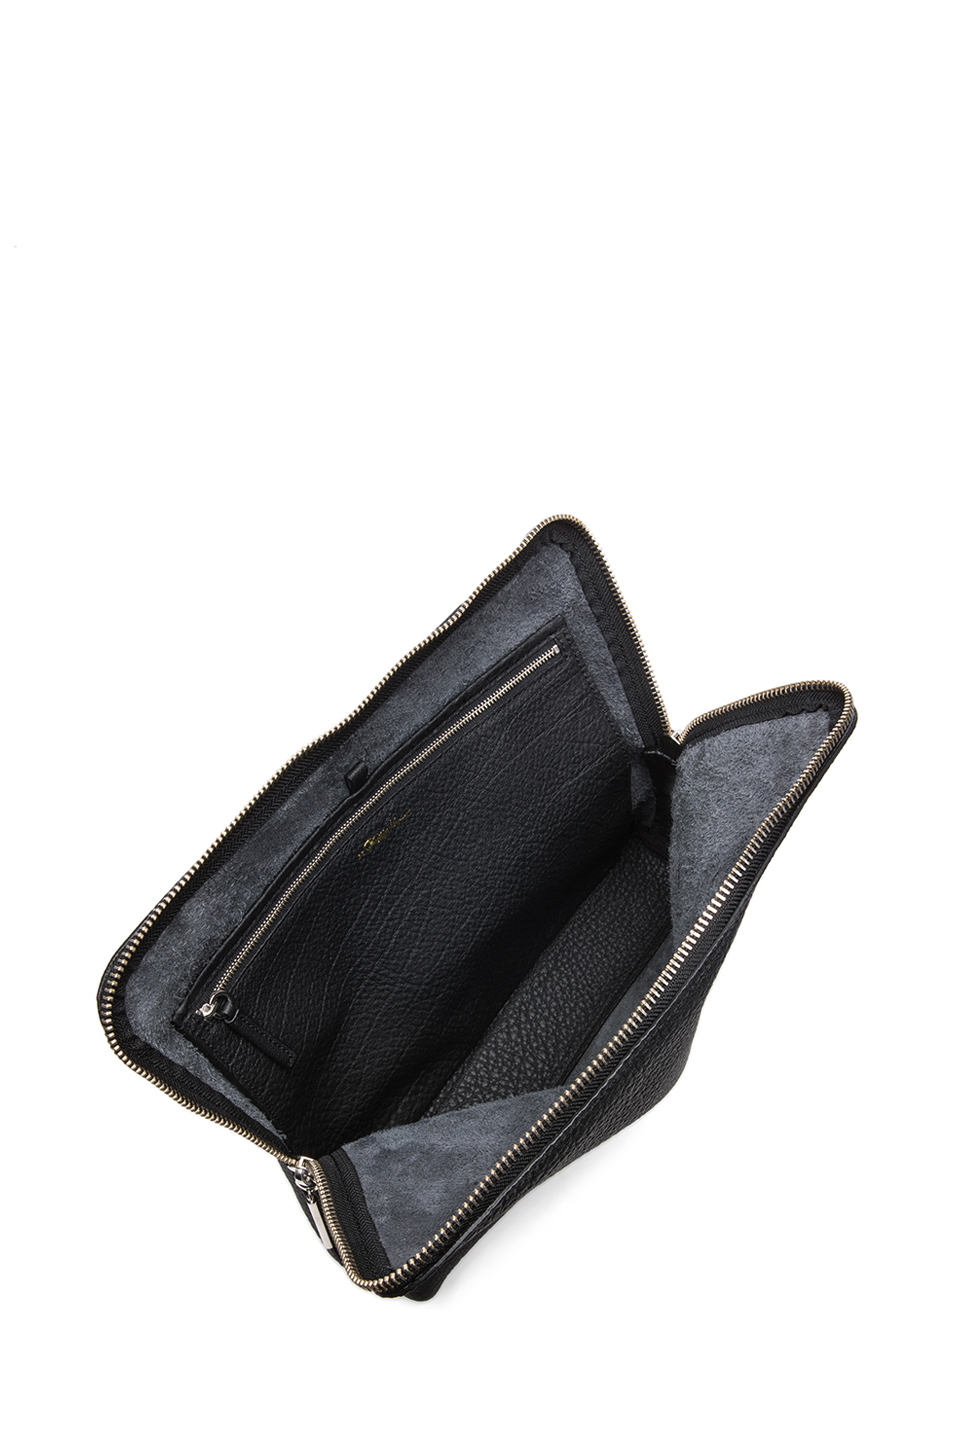 3.1 phillip lim|Medium 31 Minute Bag in Black